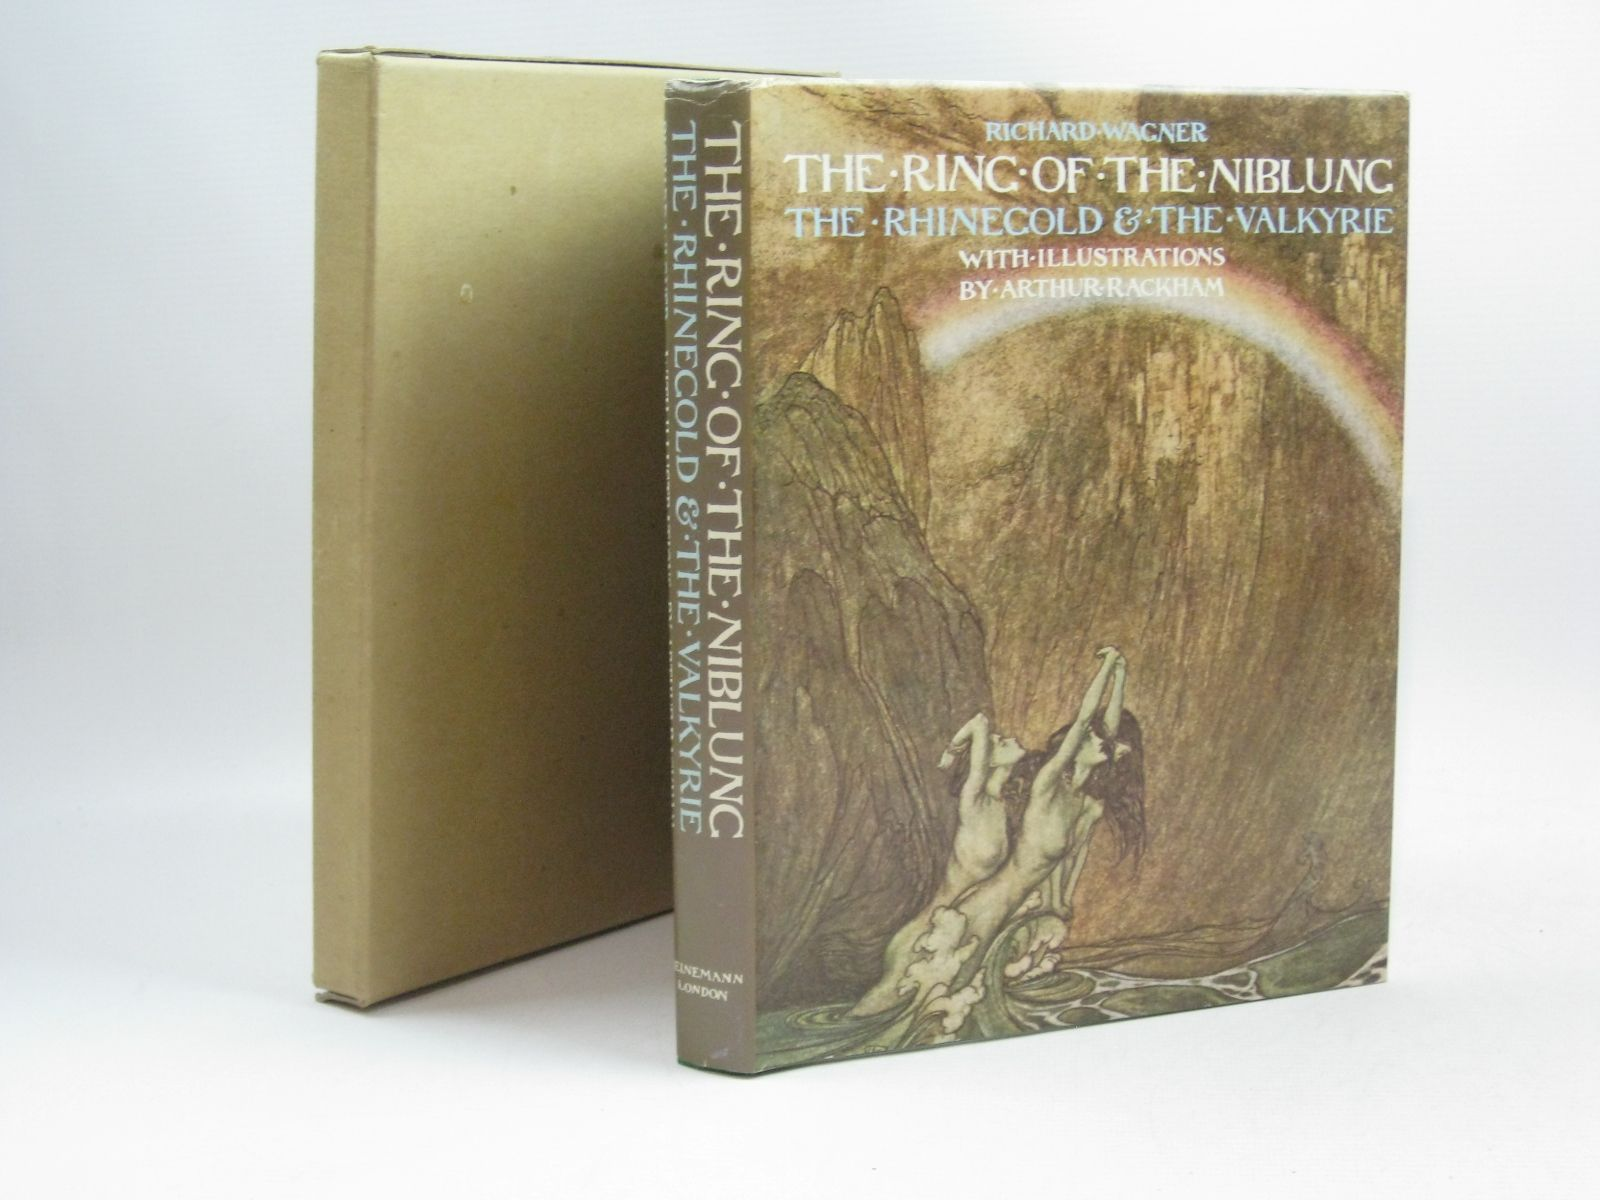 Photo of THE RING OF THE NIBLUNG: THE RHINEGOLD AND THE VALKYRIE written by Wagner, Richard illustrated by Rackham, Arthur published by William Heinemann Ltd. (STOCK CODE: 1314827)  for sale by Stella & Rose's Books